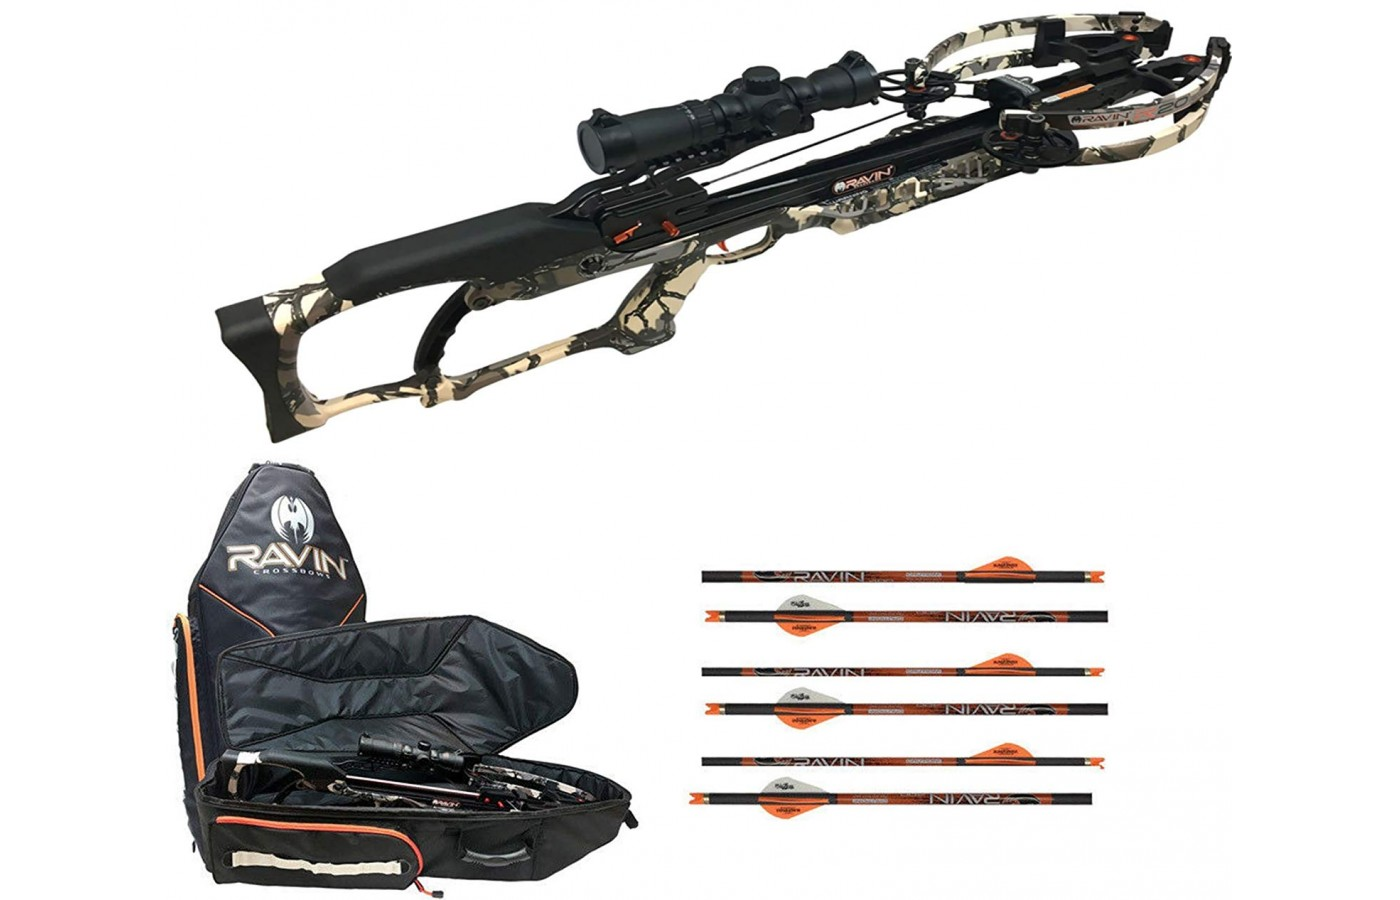 A mounting bracket, Versa-Draw cocking handle, quiver, six Ravin arrows, and the Vortex Strike Eagle scope that can be mounted to an adjustable riser level and jack plate are included.